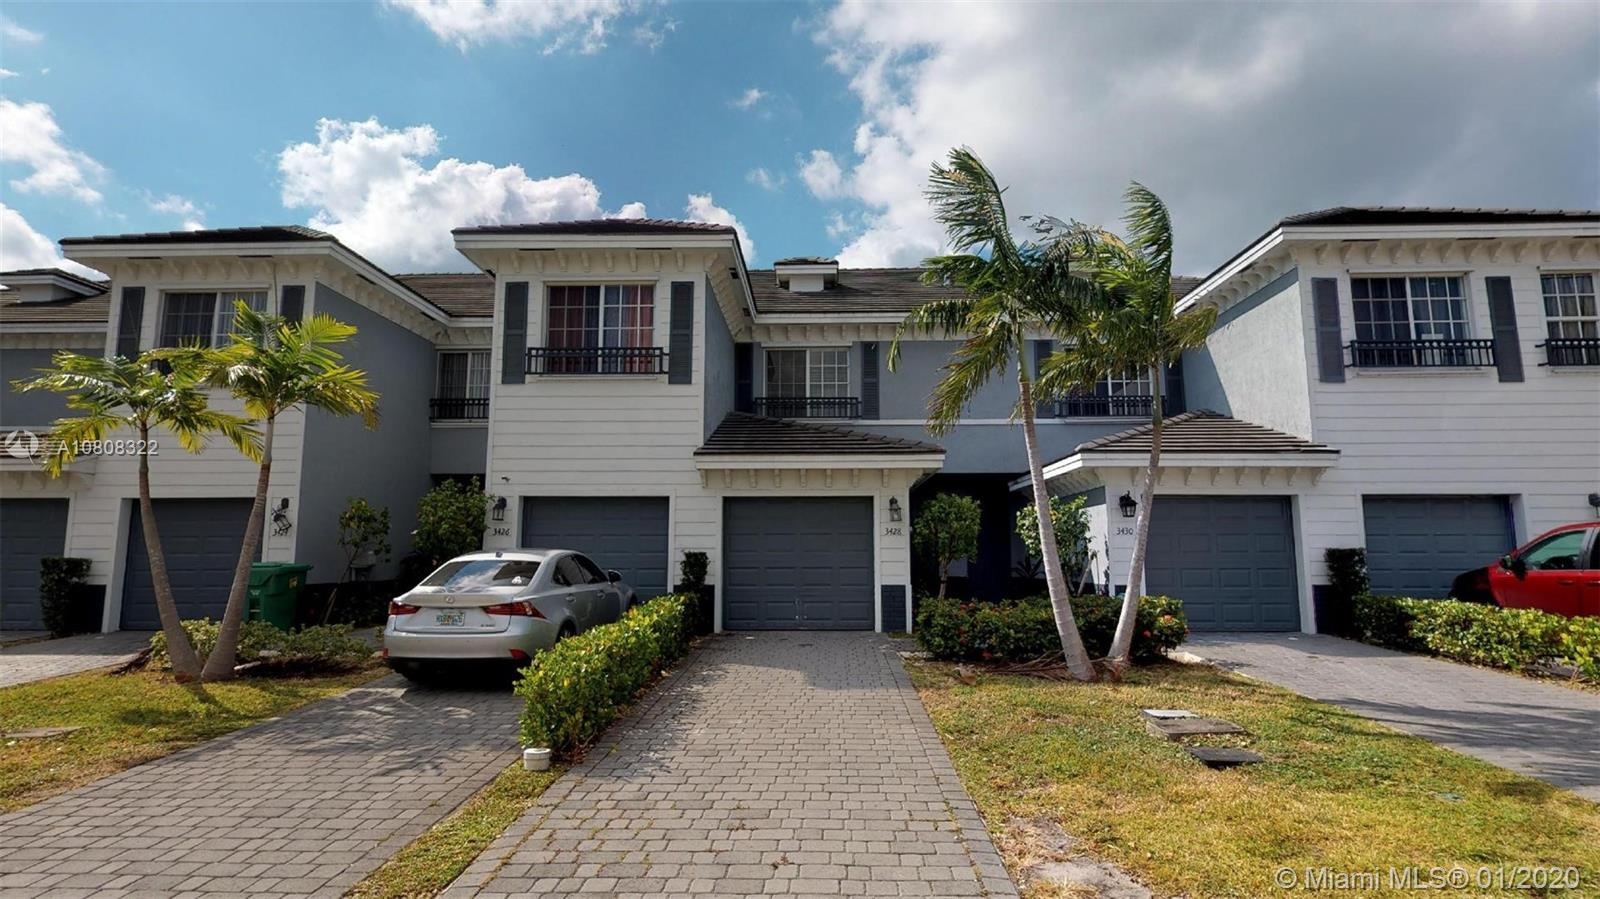 PROPERTY 2 BED /2.5 BATH TOWNHOUSE , MINUTES FROM SAWGRASS MALLl, FORT LAUDERDALE BEACH. AMENITIES INCLUDING A SWIMMING POOL , MEETING ROOMS, CHILDREN´S PLAYGROUND. GREAT OPPORTUNITY .